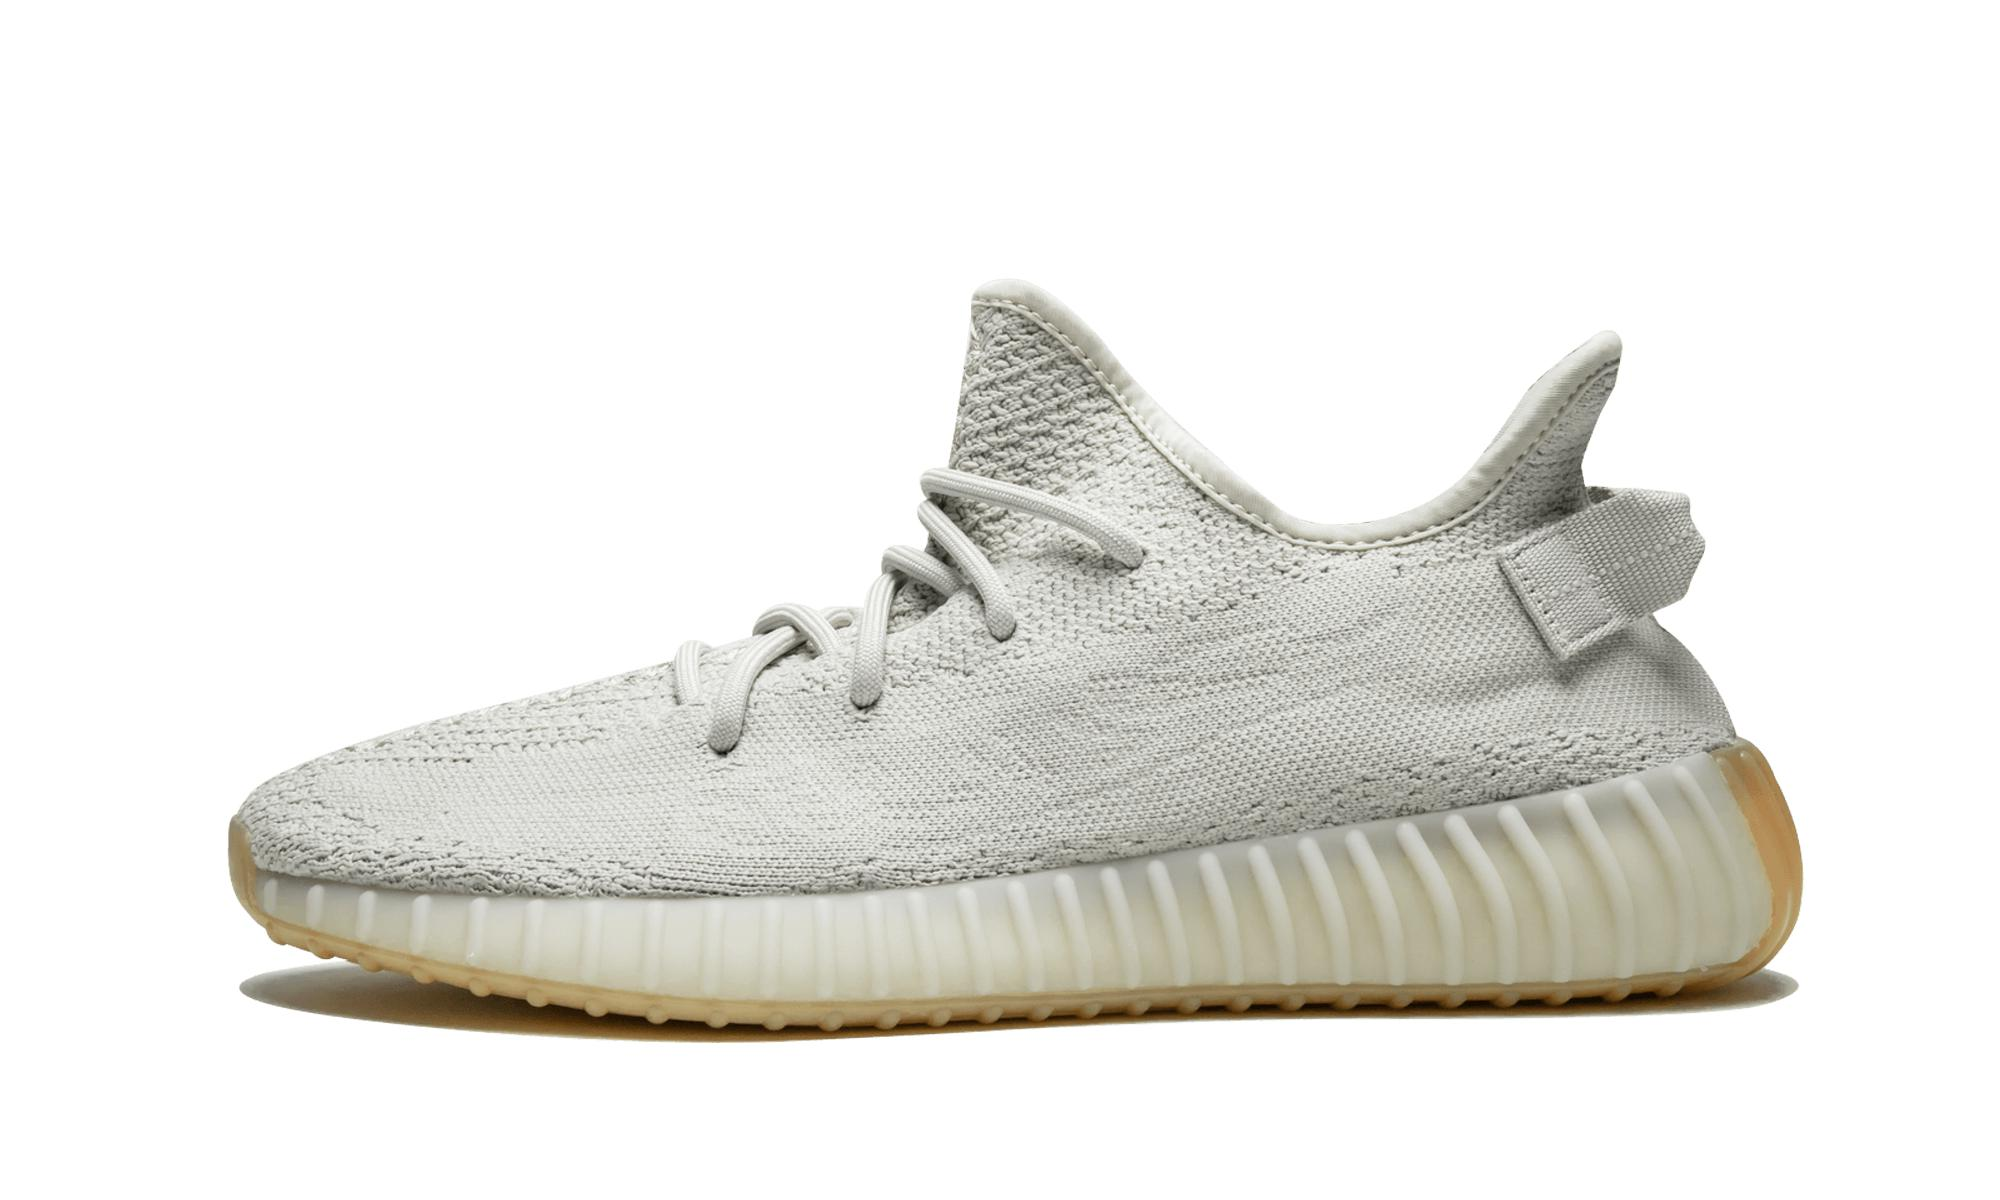 Yeezy Boost 350 V2 Defects